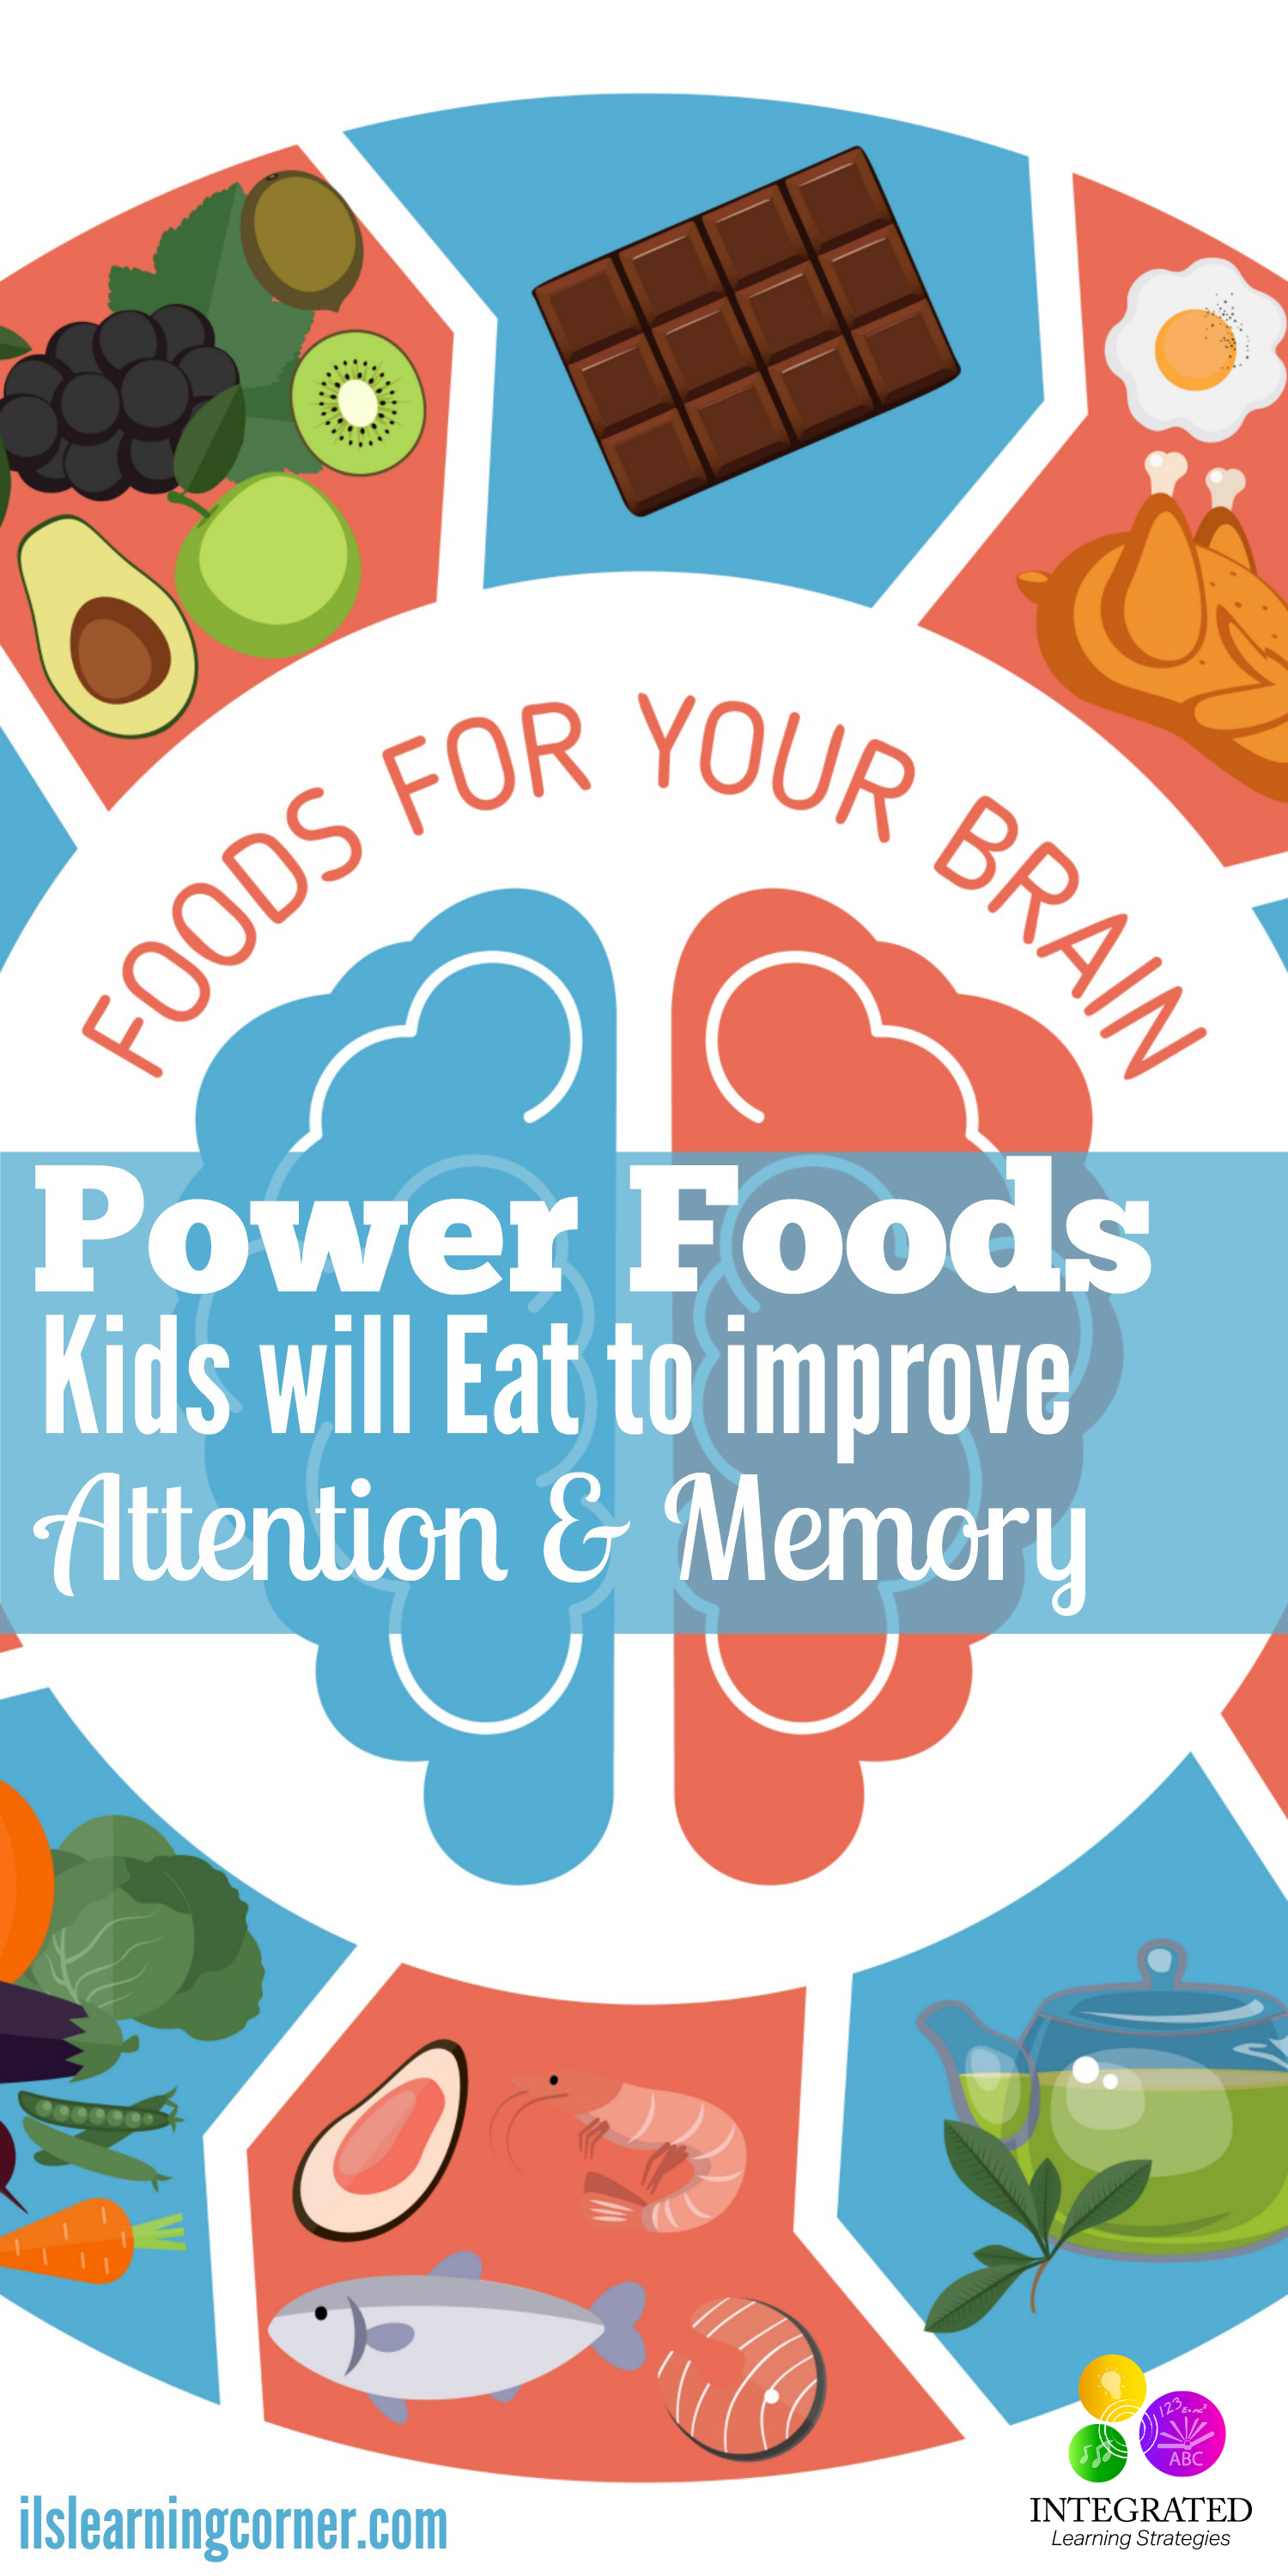 Power Foods Kids Will Actually Eat To Improve Attention